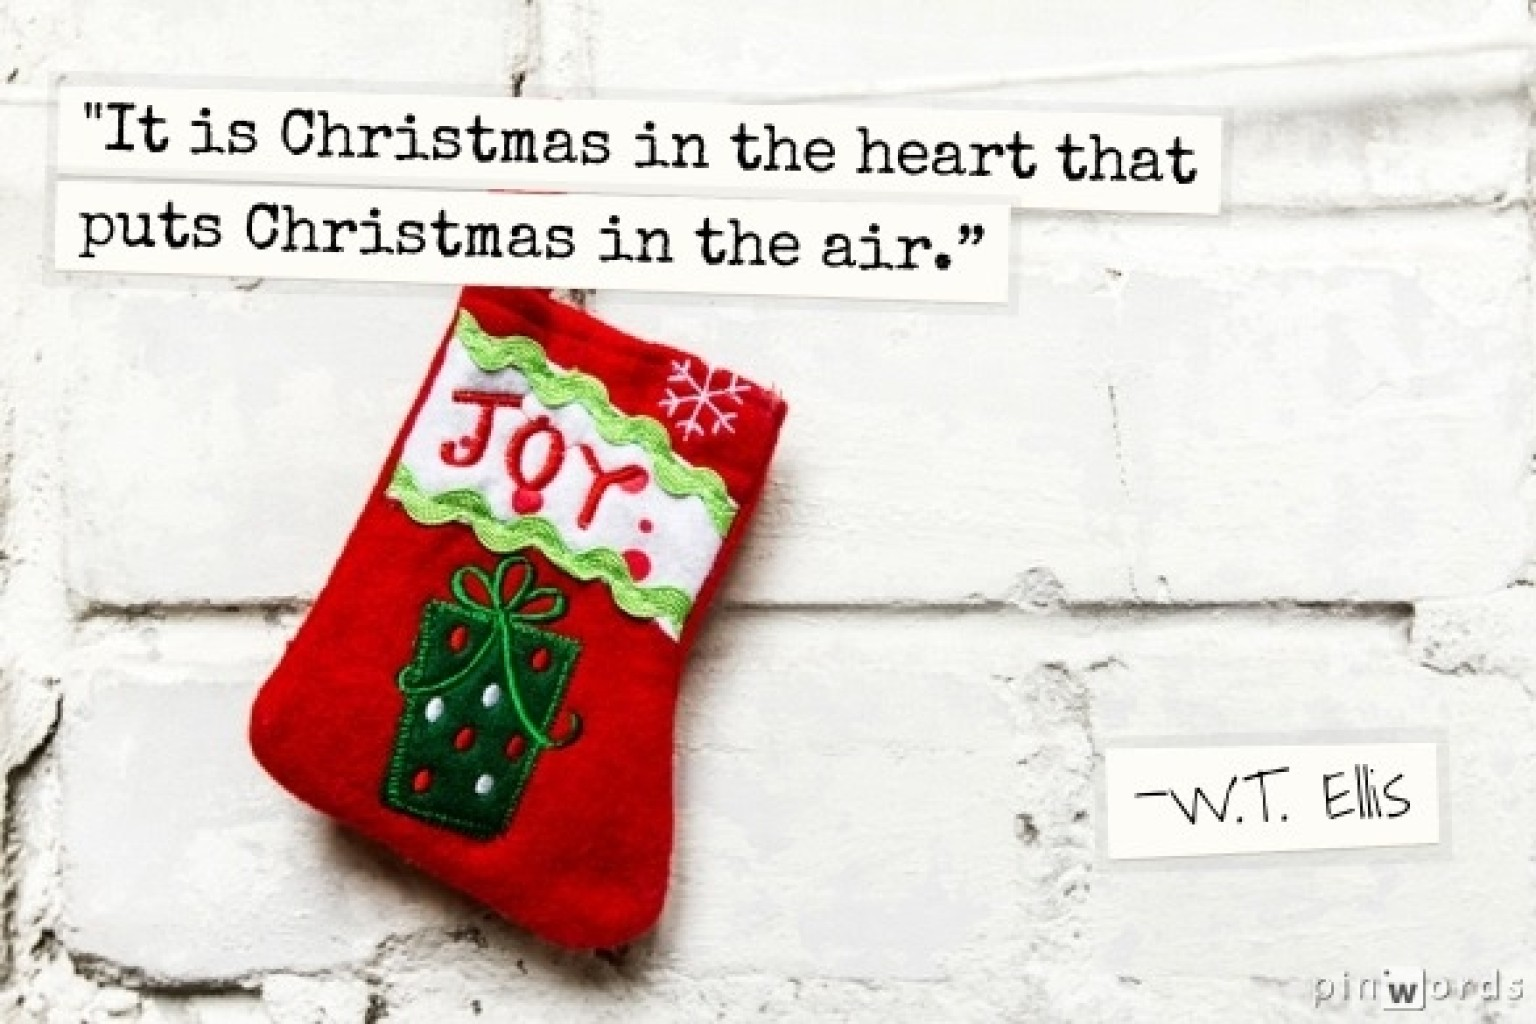 Cute Christmas Quotes Quotesgram: Cute Christmas Wishes Quotes. QuotesGram